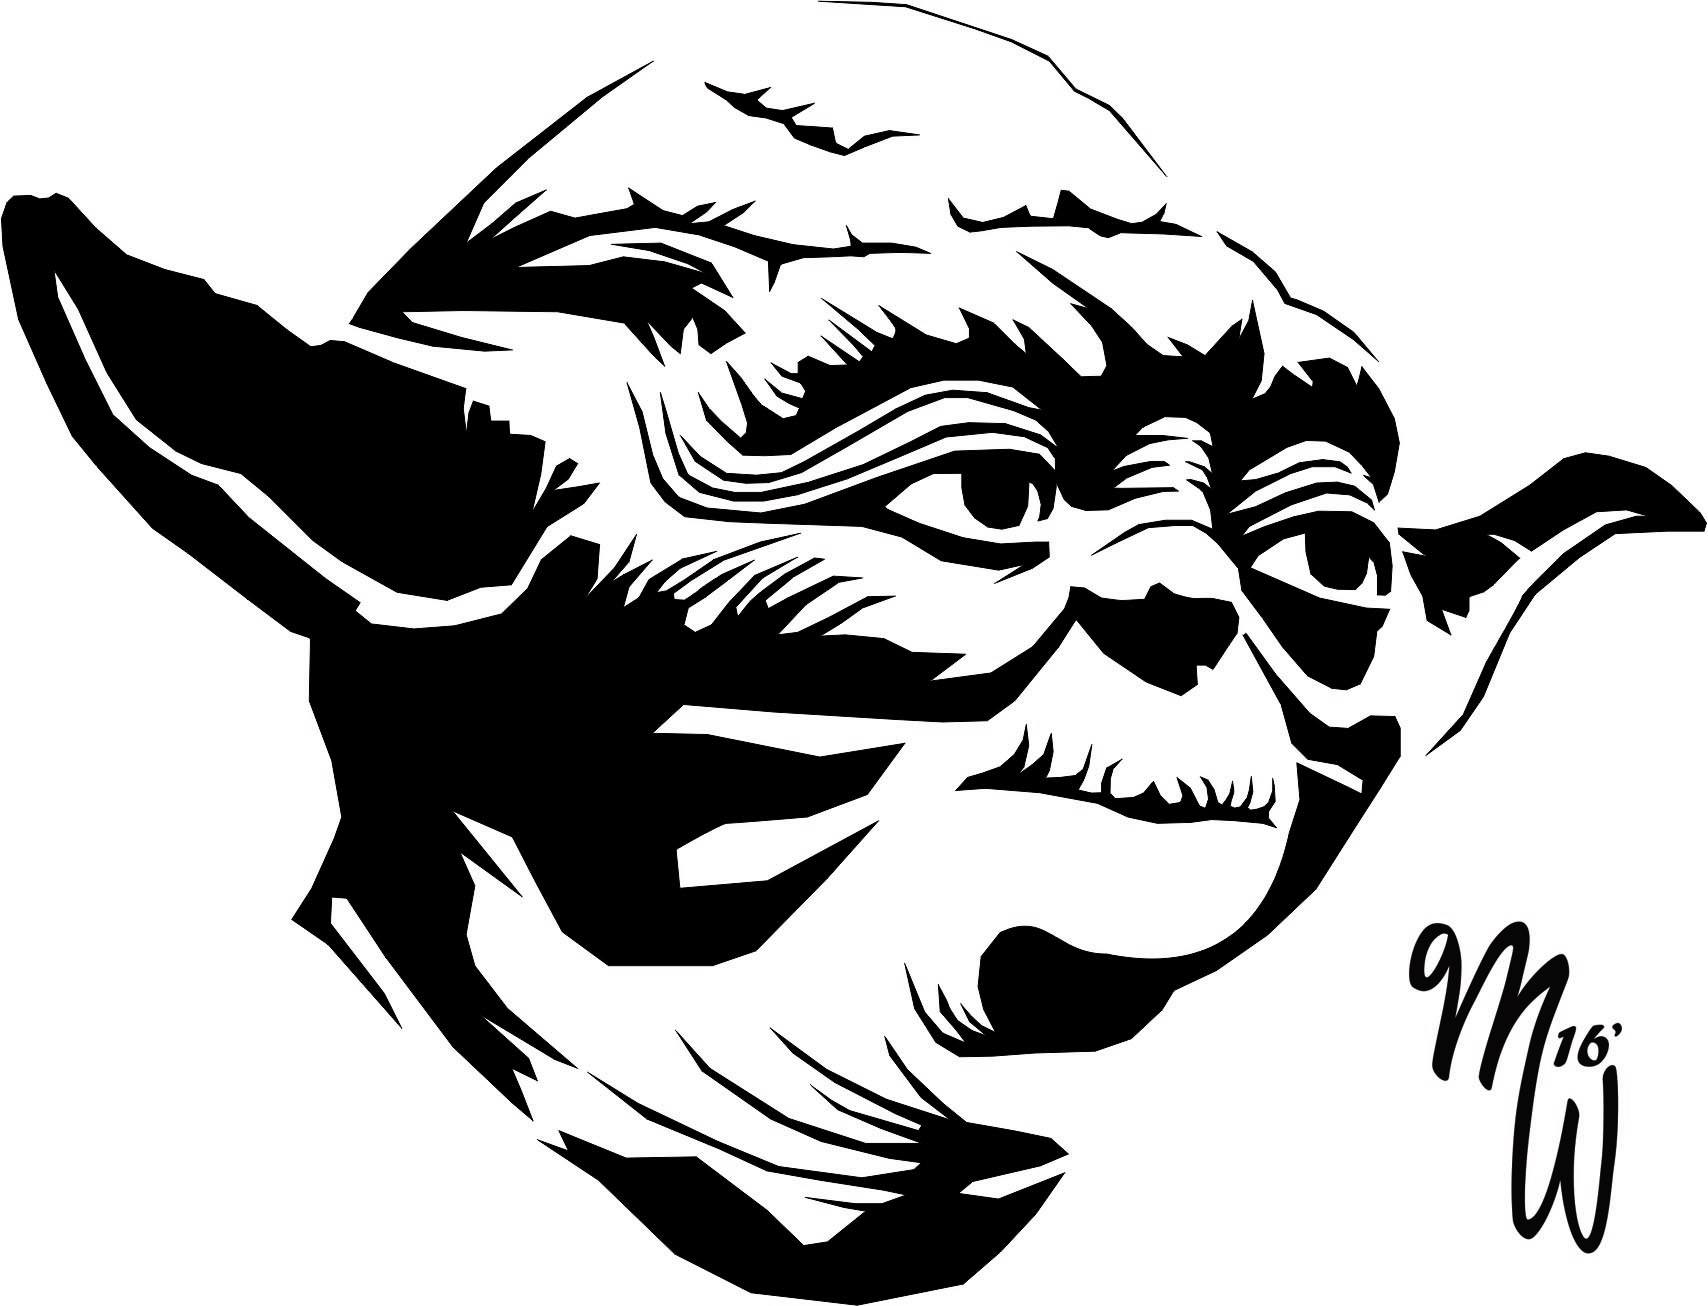 Line Art Yoda : Yoda vector wip by milliewright on deviantart